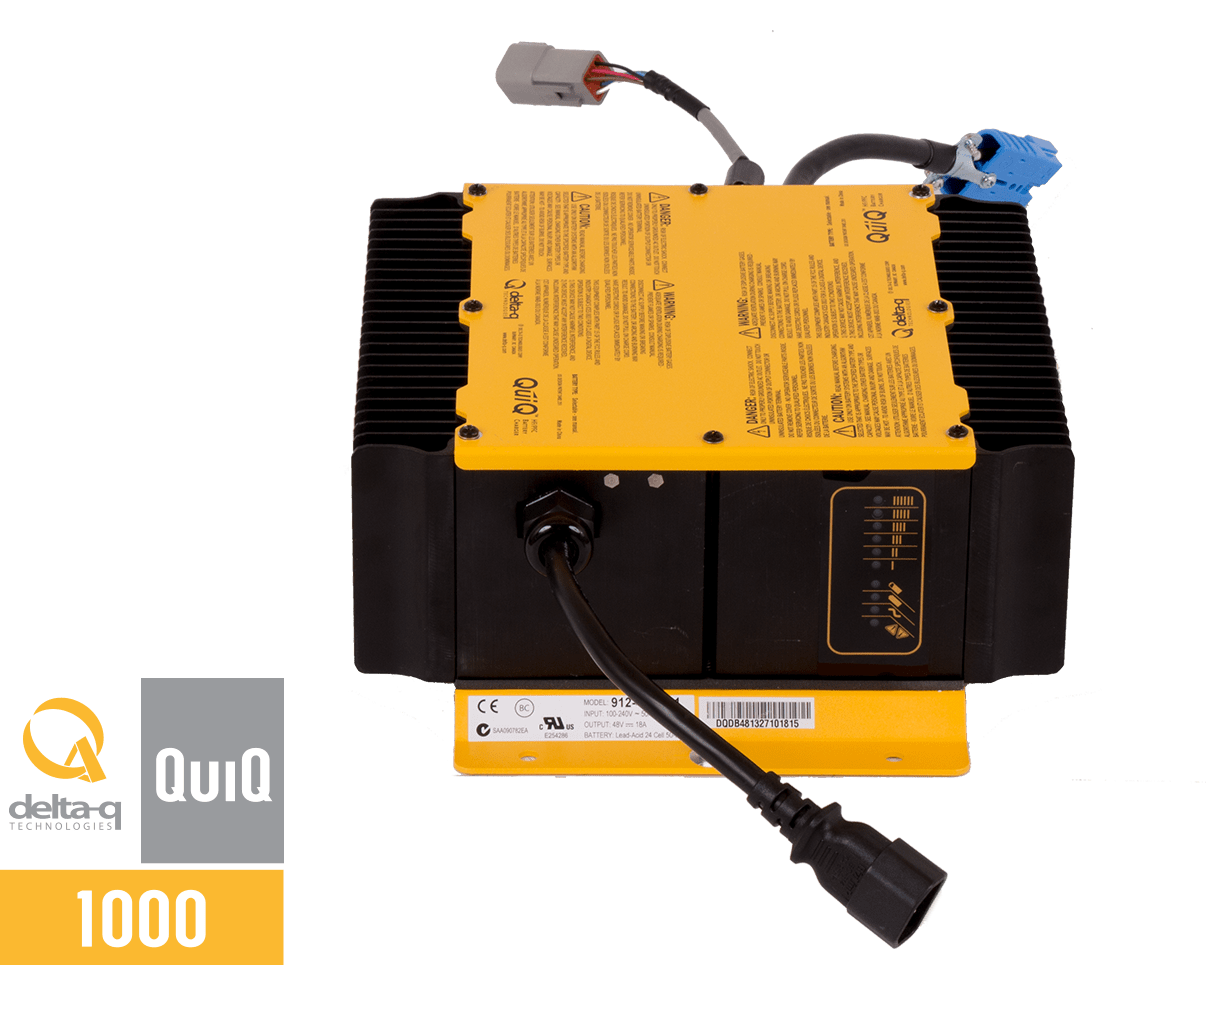 48 volt golf cart battery wiring diagram nissan titan fuse box quiq 1000 industrial charger delta q technologies technical specs